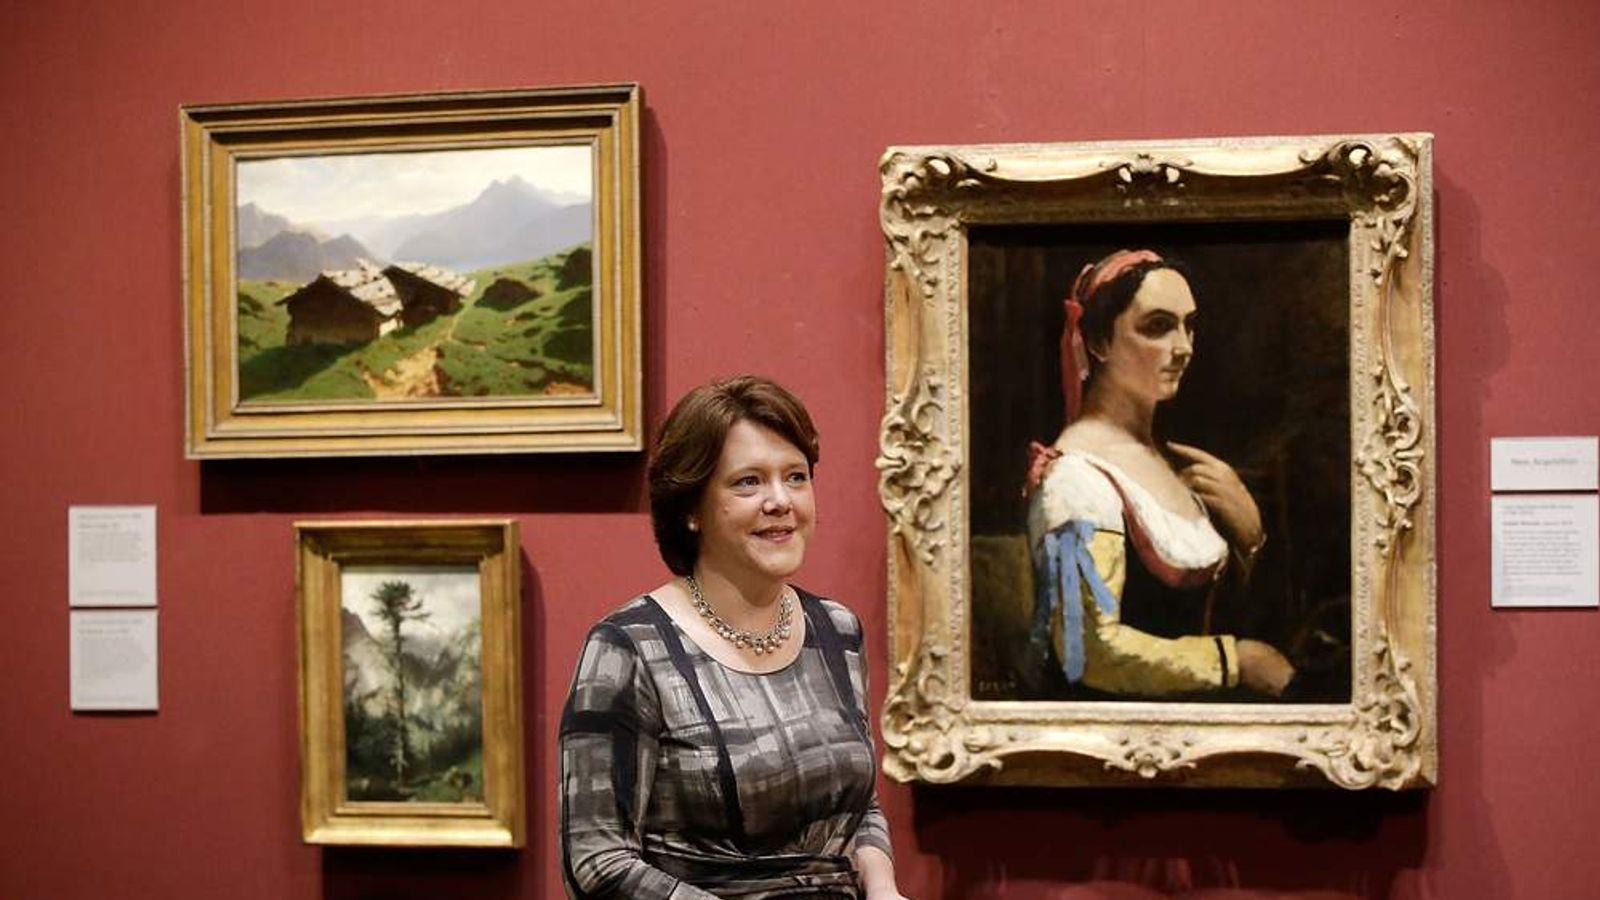 Culture Secretary Maria Miller faces public criticism for expenses claims.